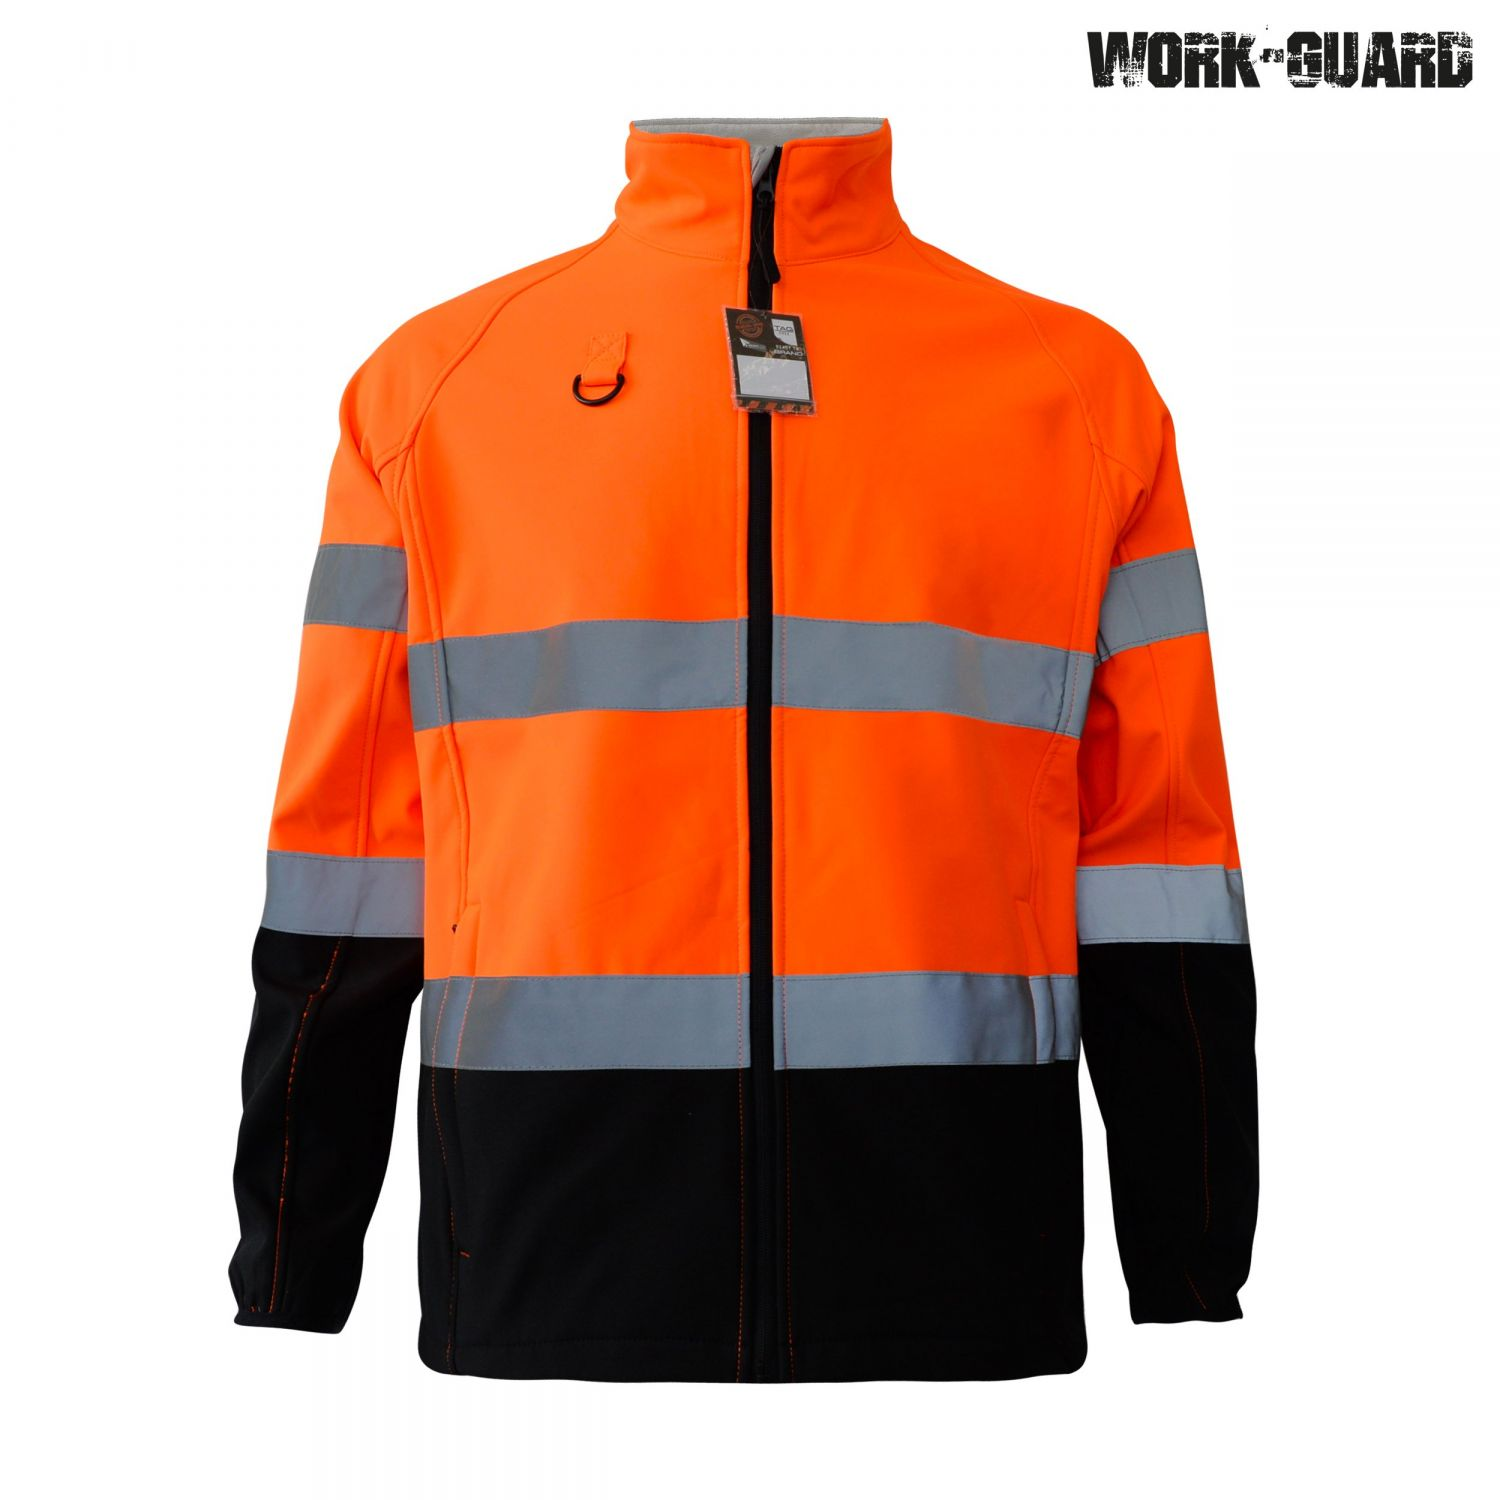 Work Guard Hi Visibility Printable Softshell Jacket D/N